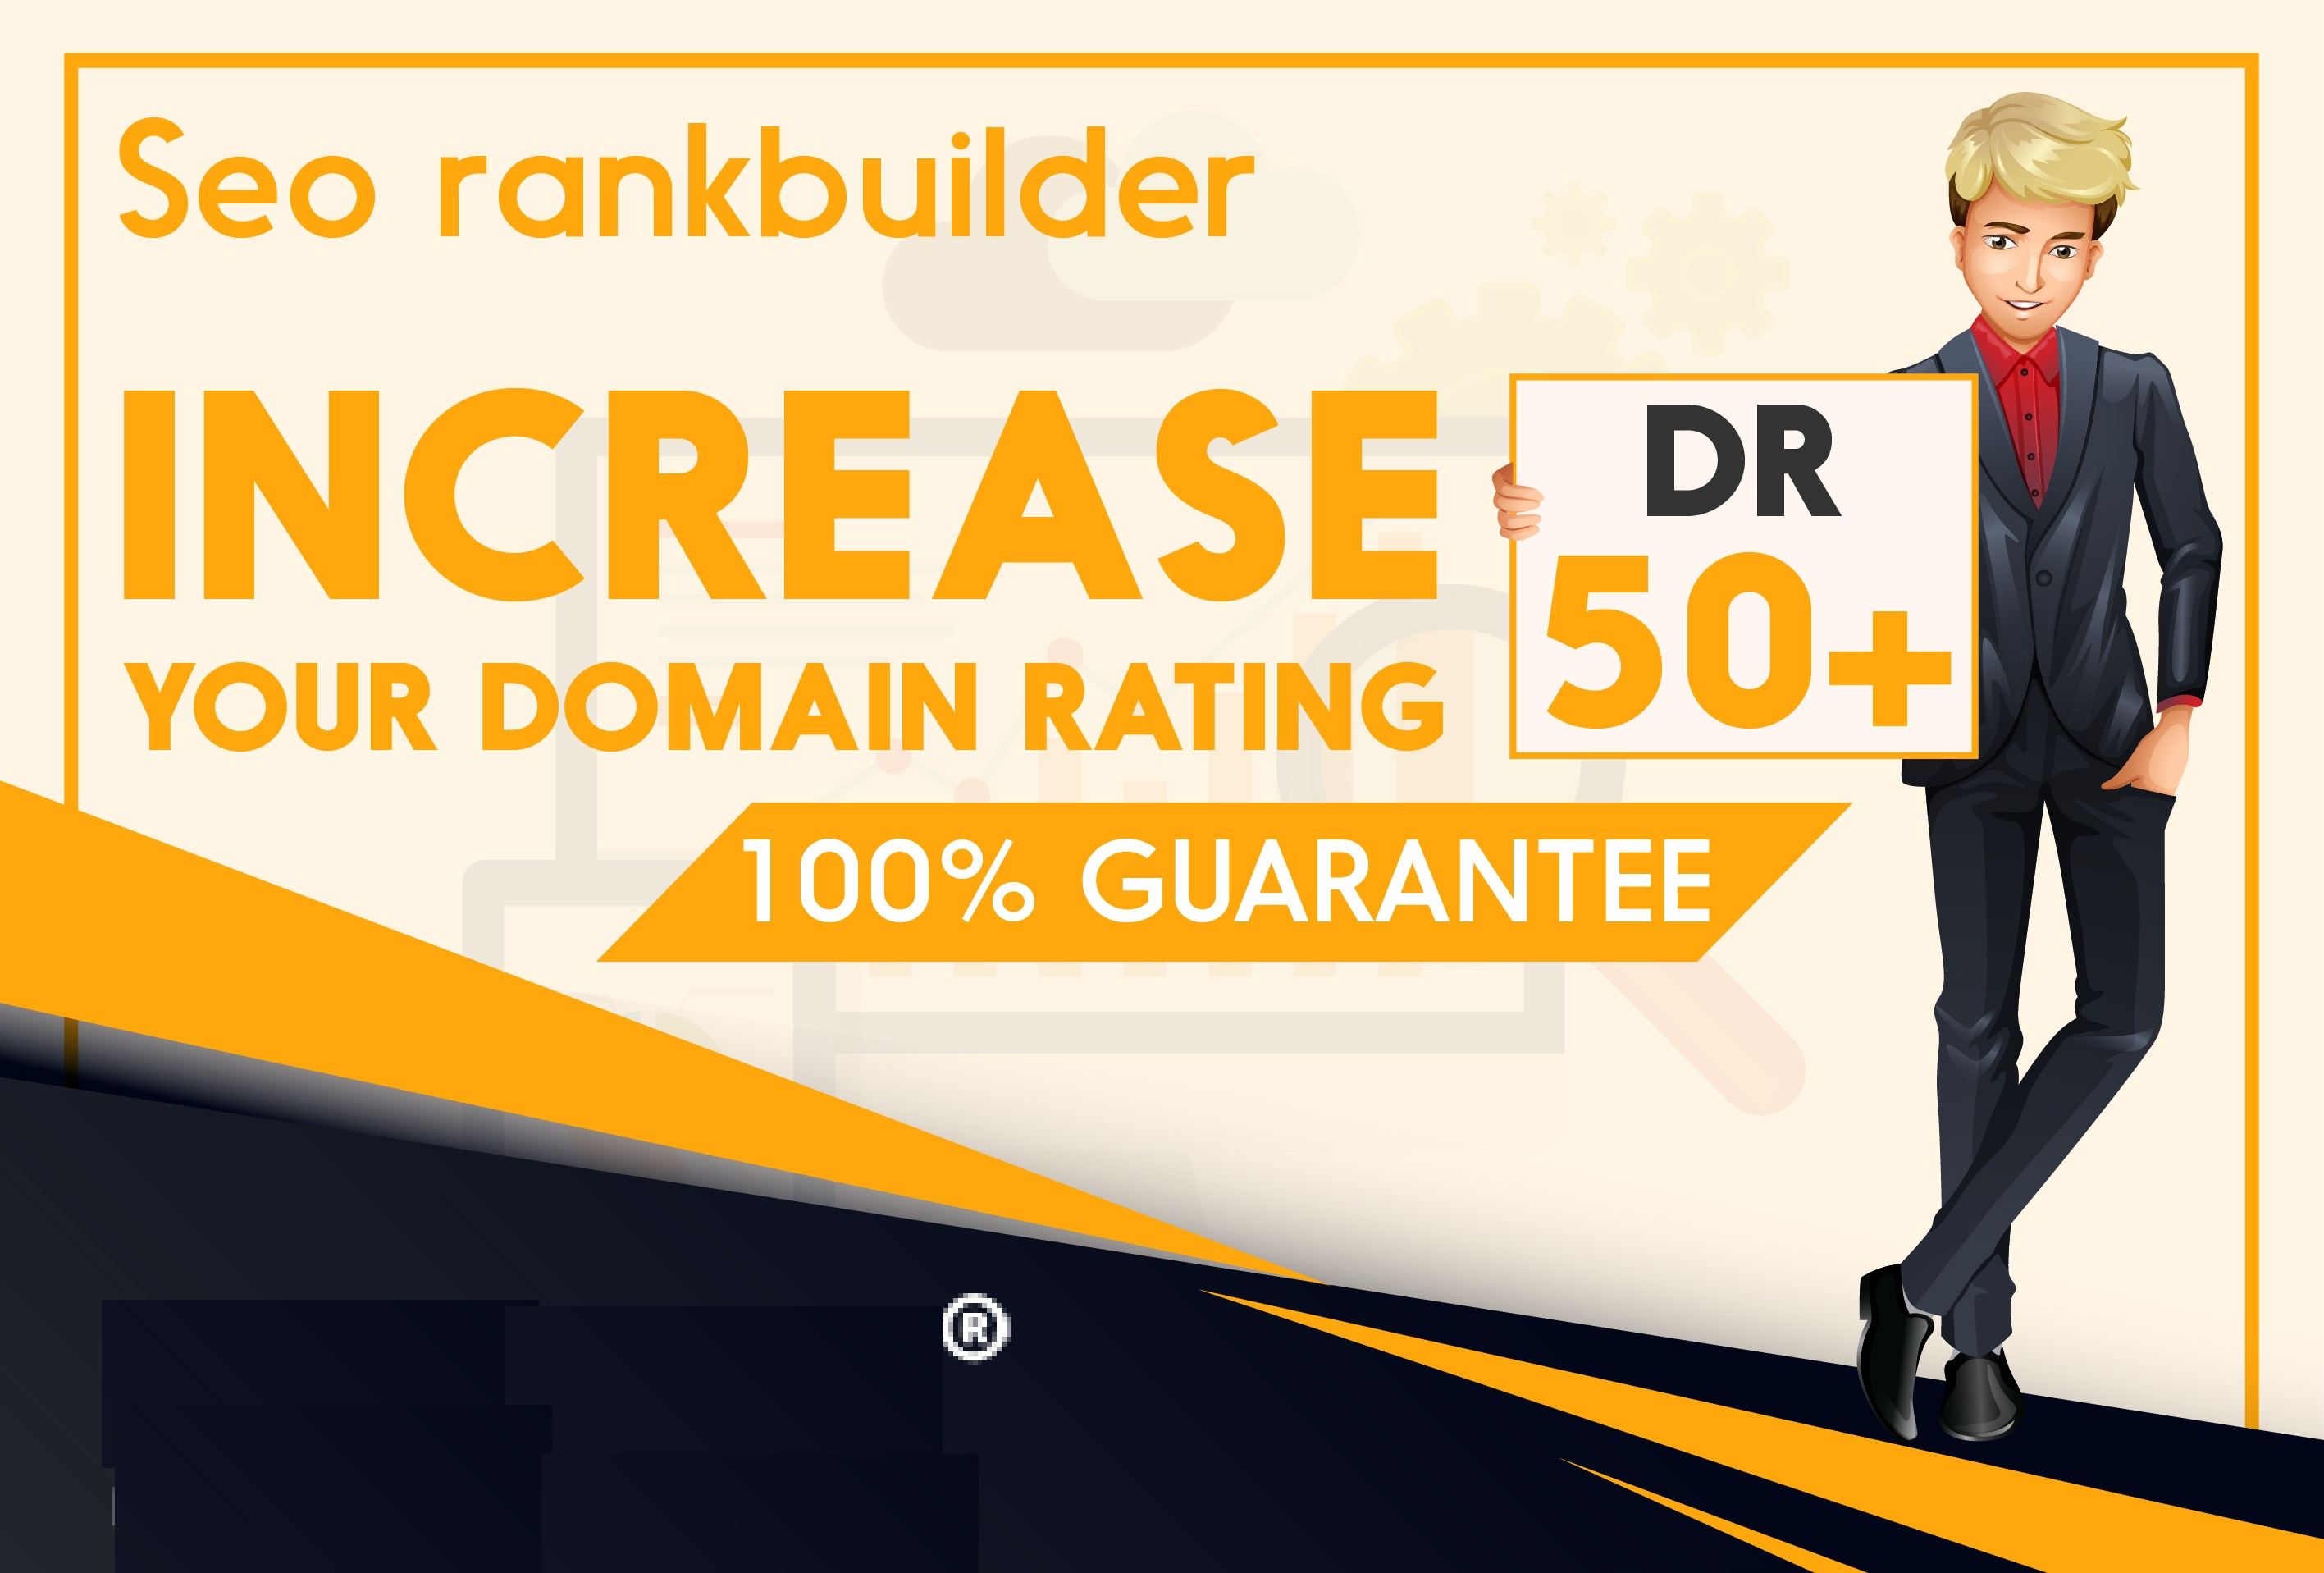 I will increase domain rating DR ahrefs 50 plus in 30 days